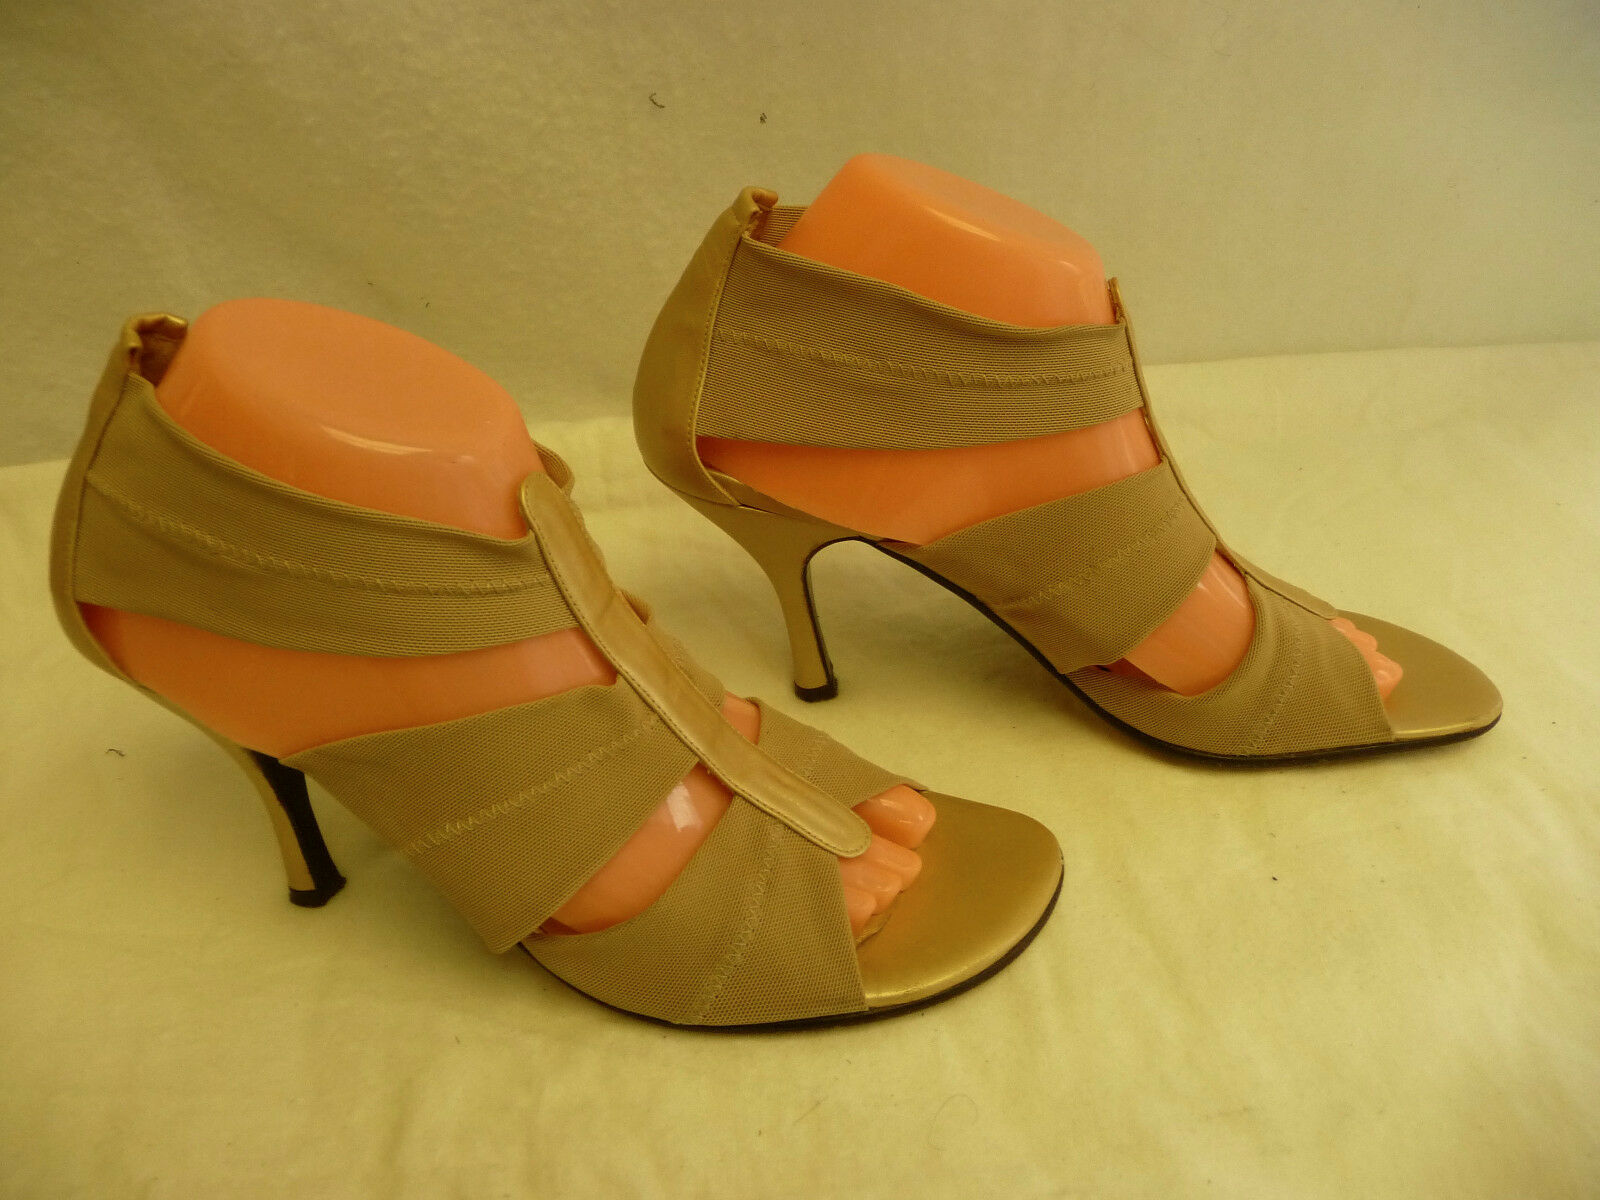 DONALD J PLINER 9.5M Beige Open Toe Stilettos 9.5M PLINER Stretch Strappy Gold Backs Spain 22f4a6